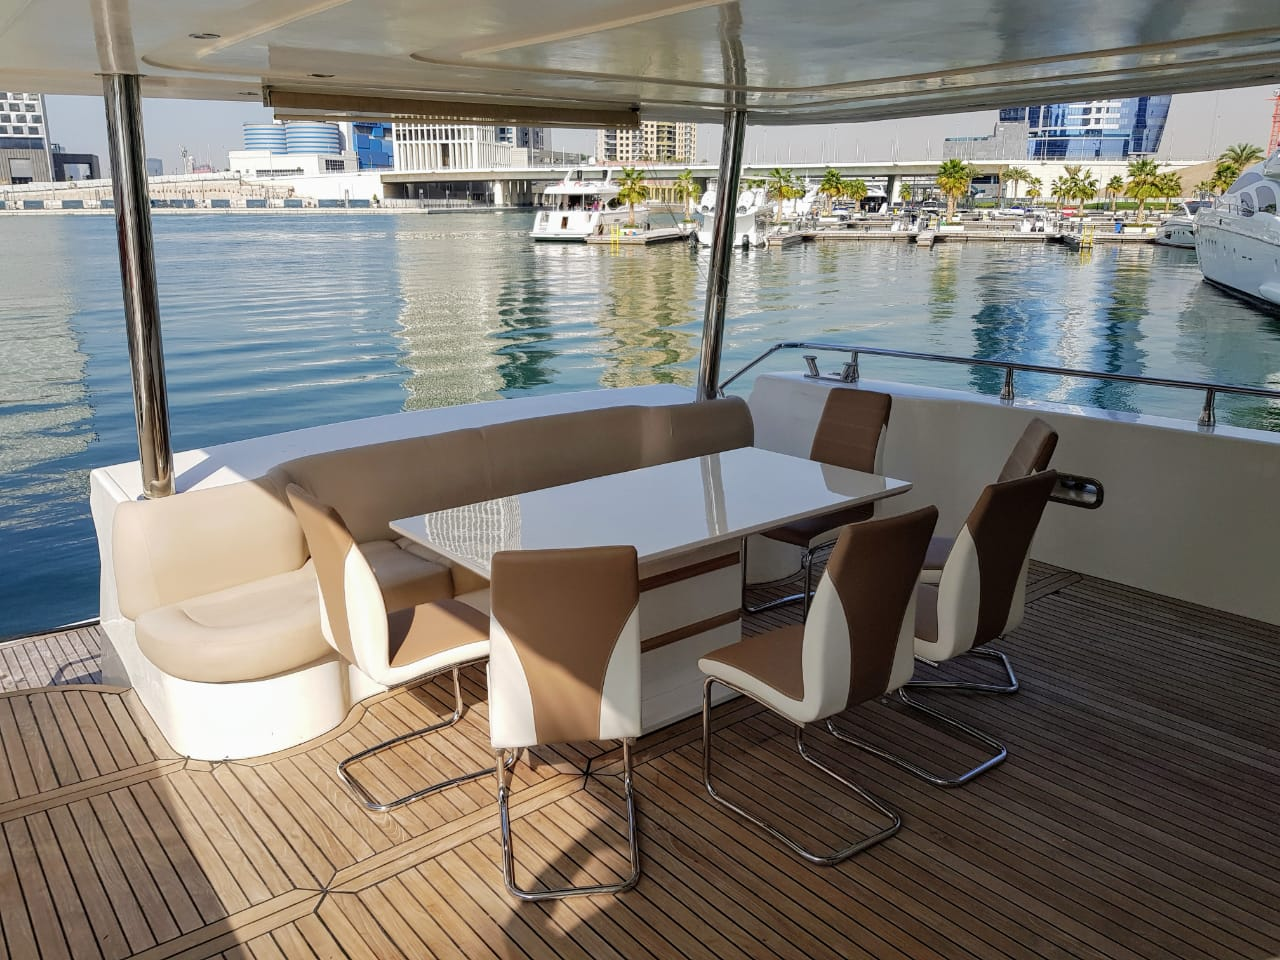 Stern Seating Area